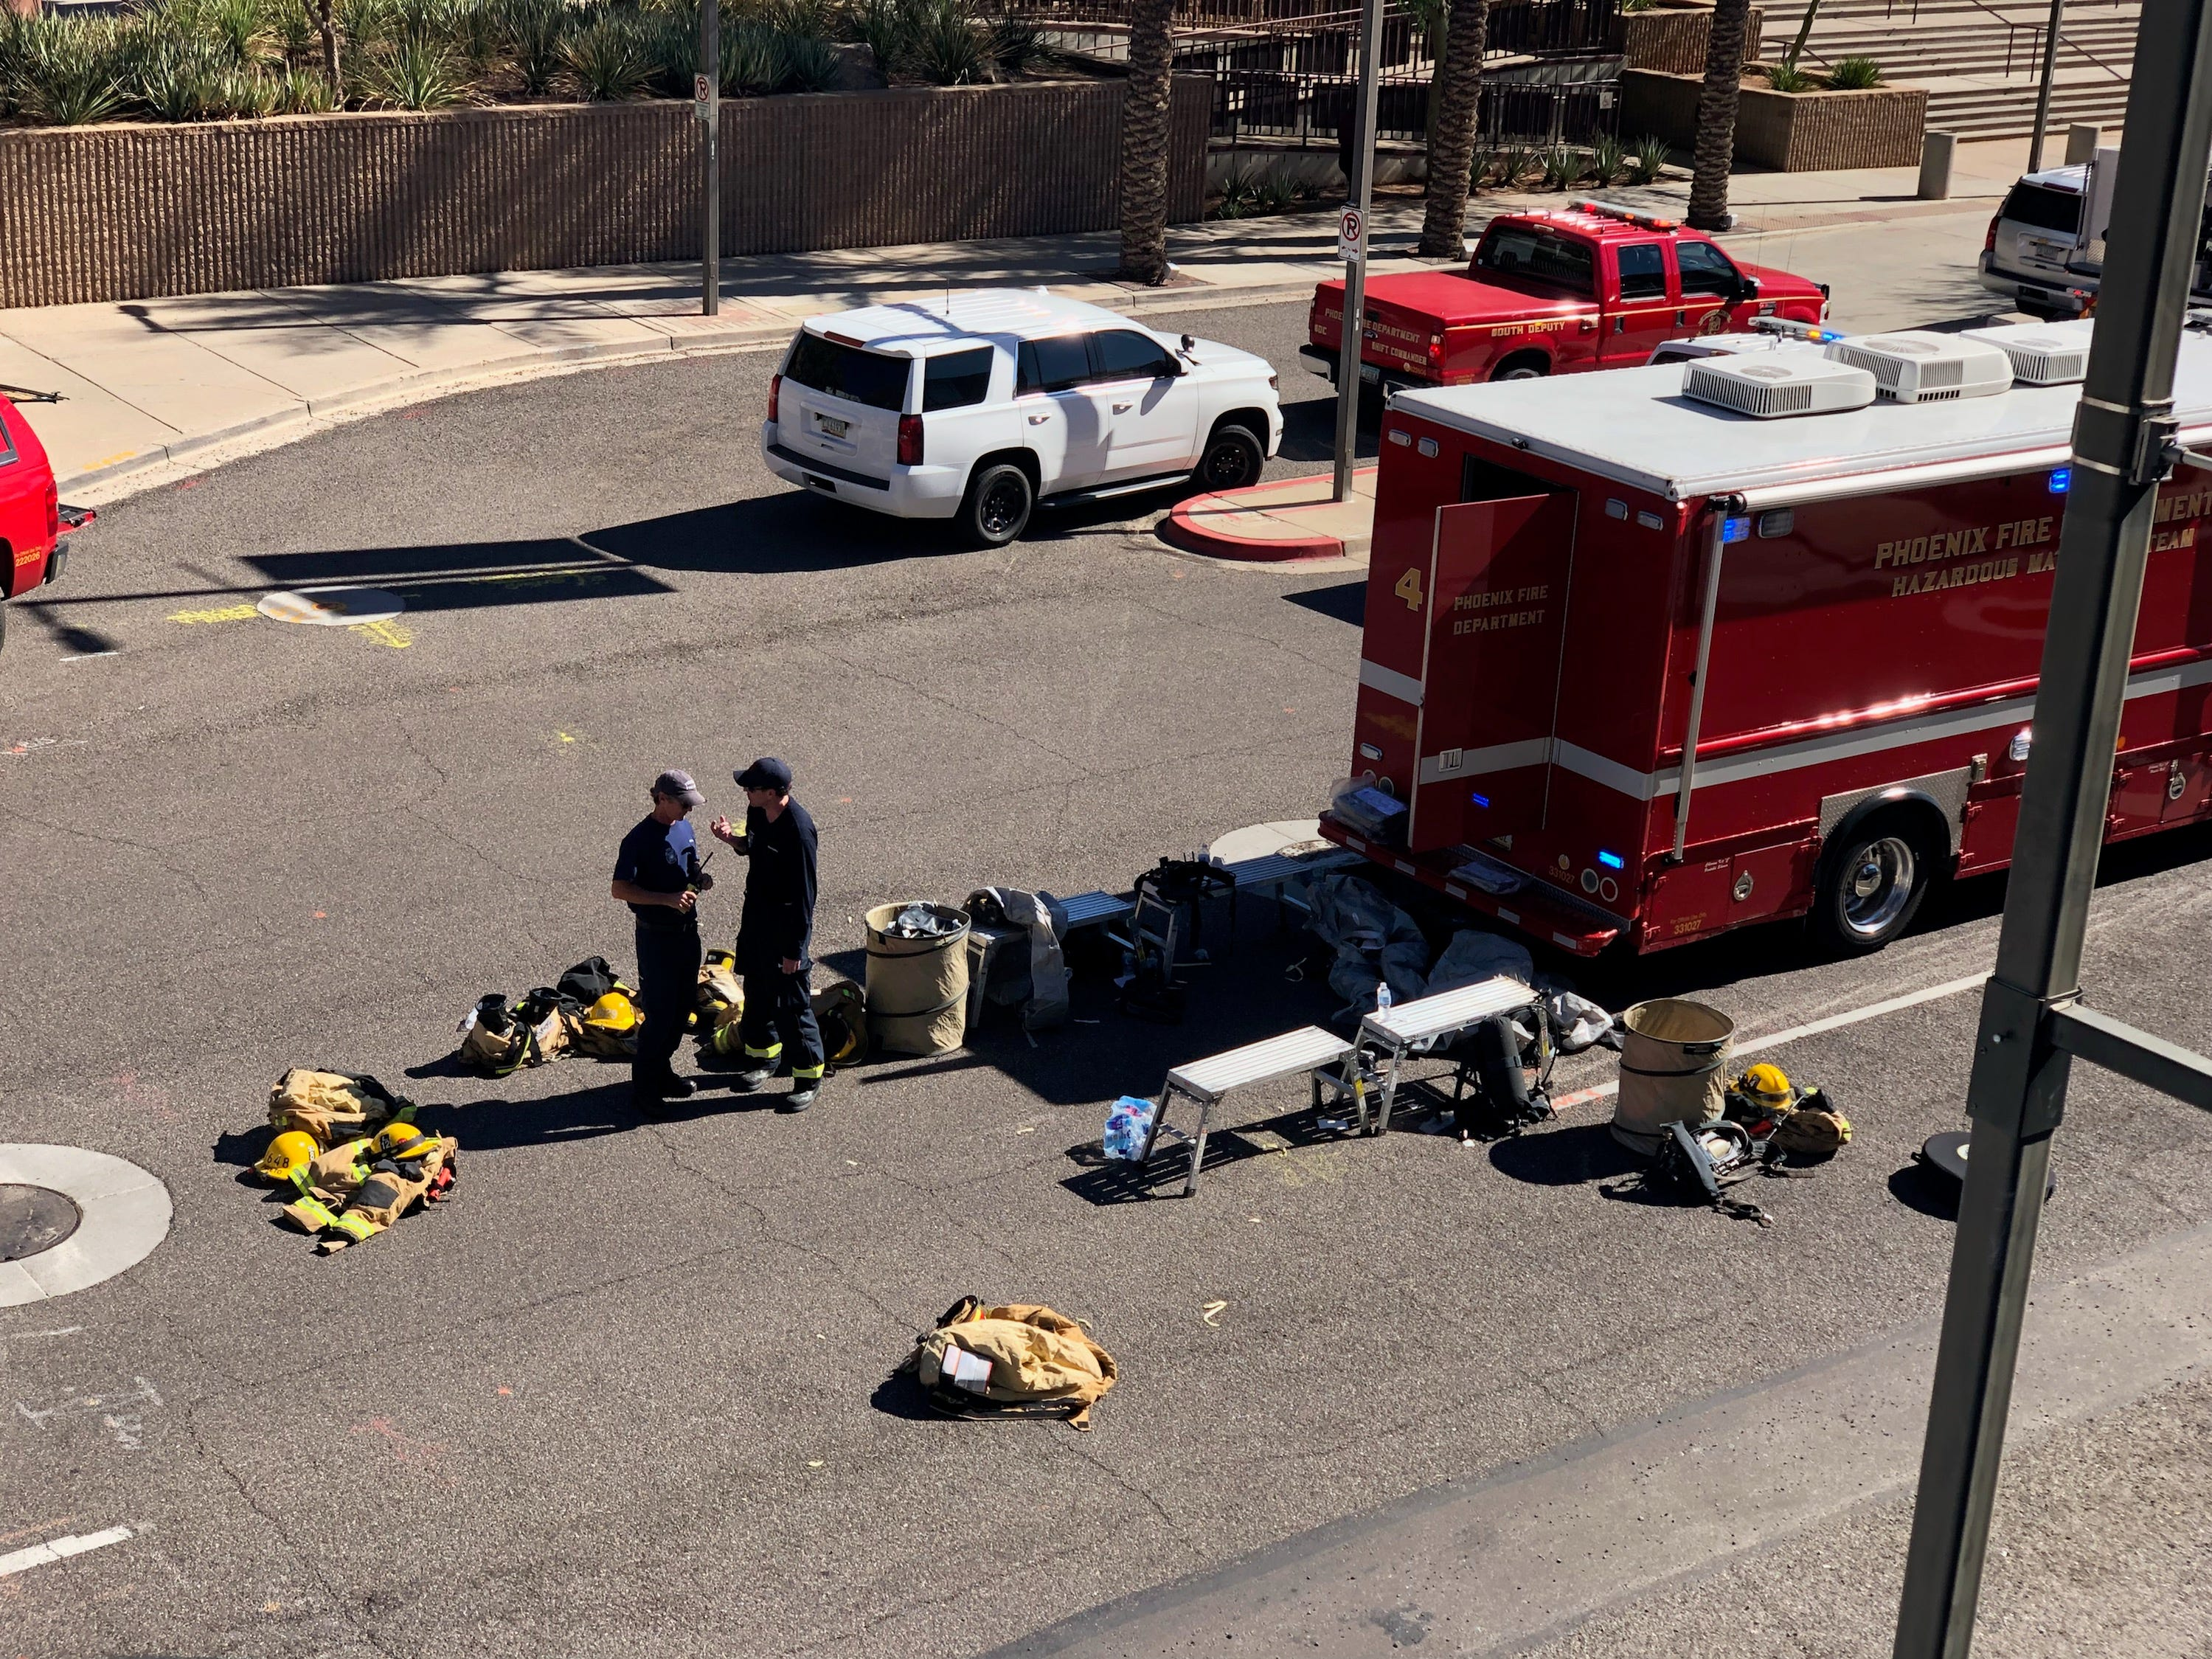 A Phoenix Fire Department vehicle sits parked by the Collier Center, 201 E. Washington St., on Nov. 2, 2018. The building's 20th floor was evacuated after the discovery of an envelope containing an unidentified white powder.